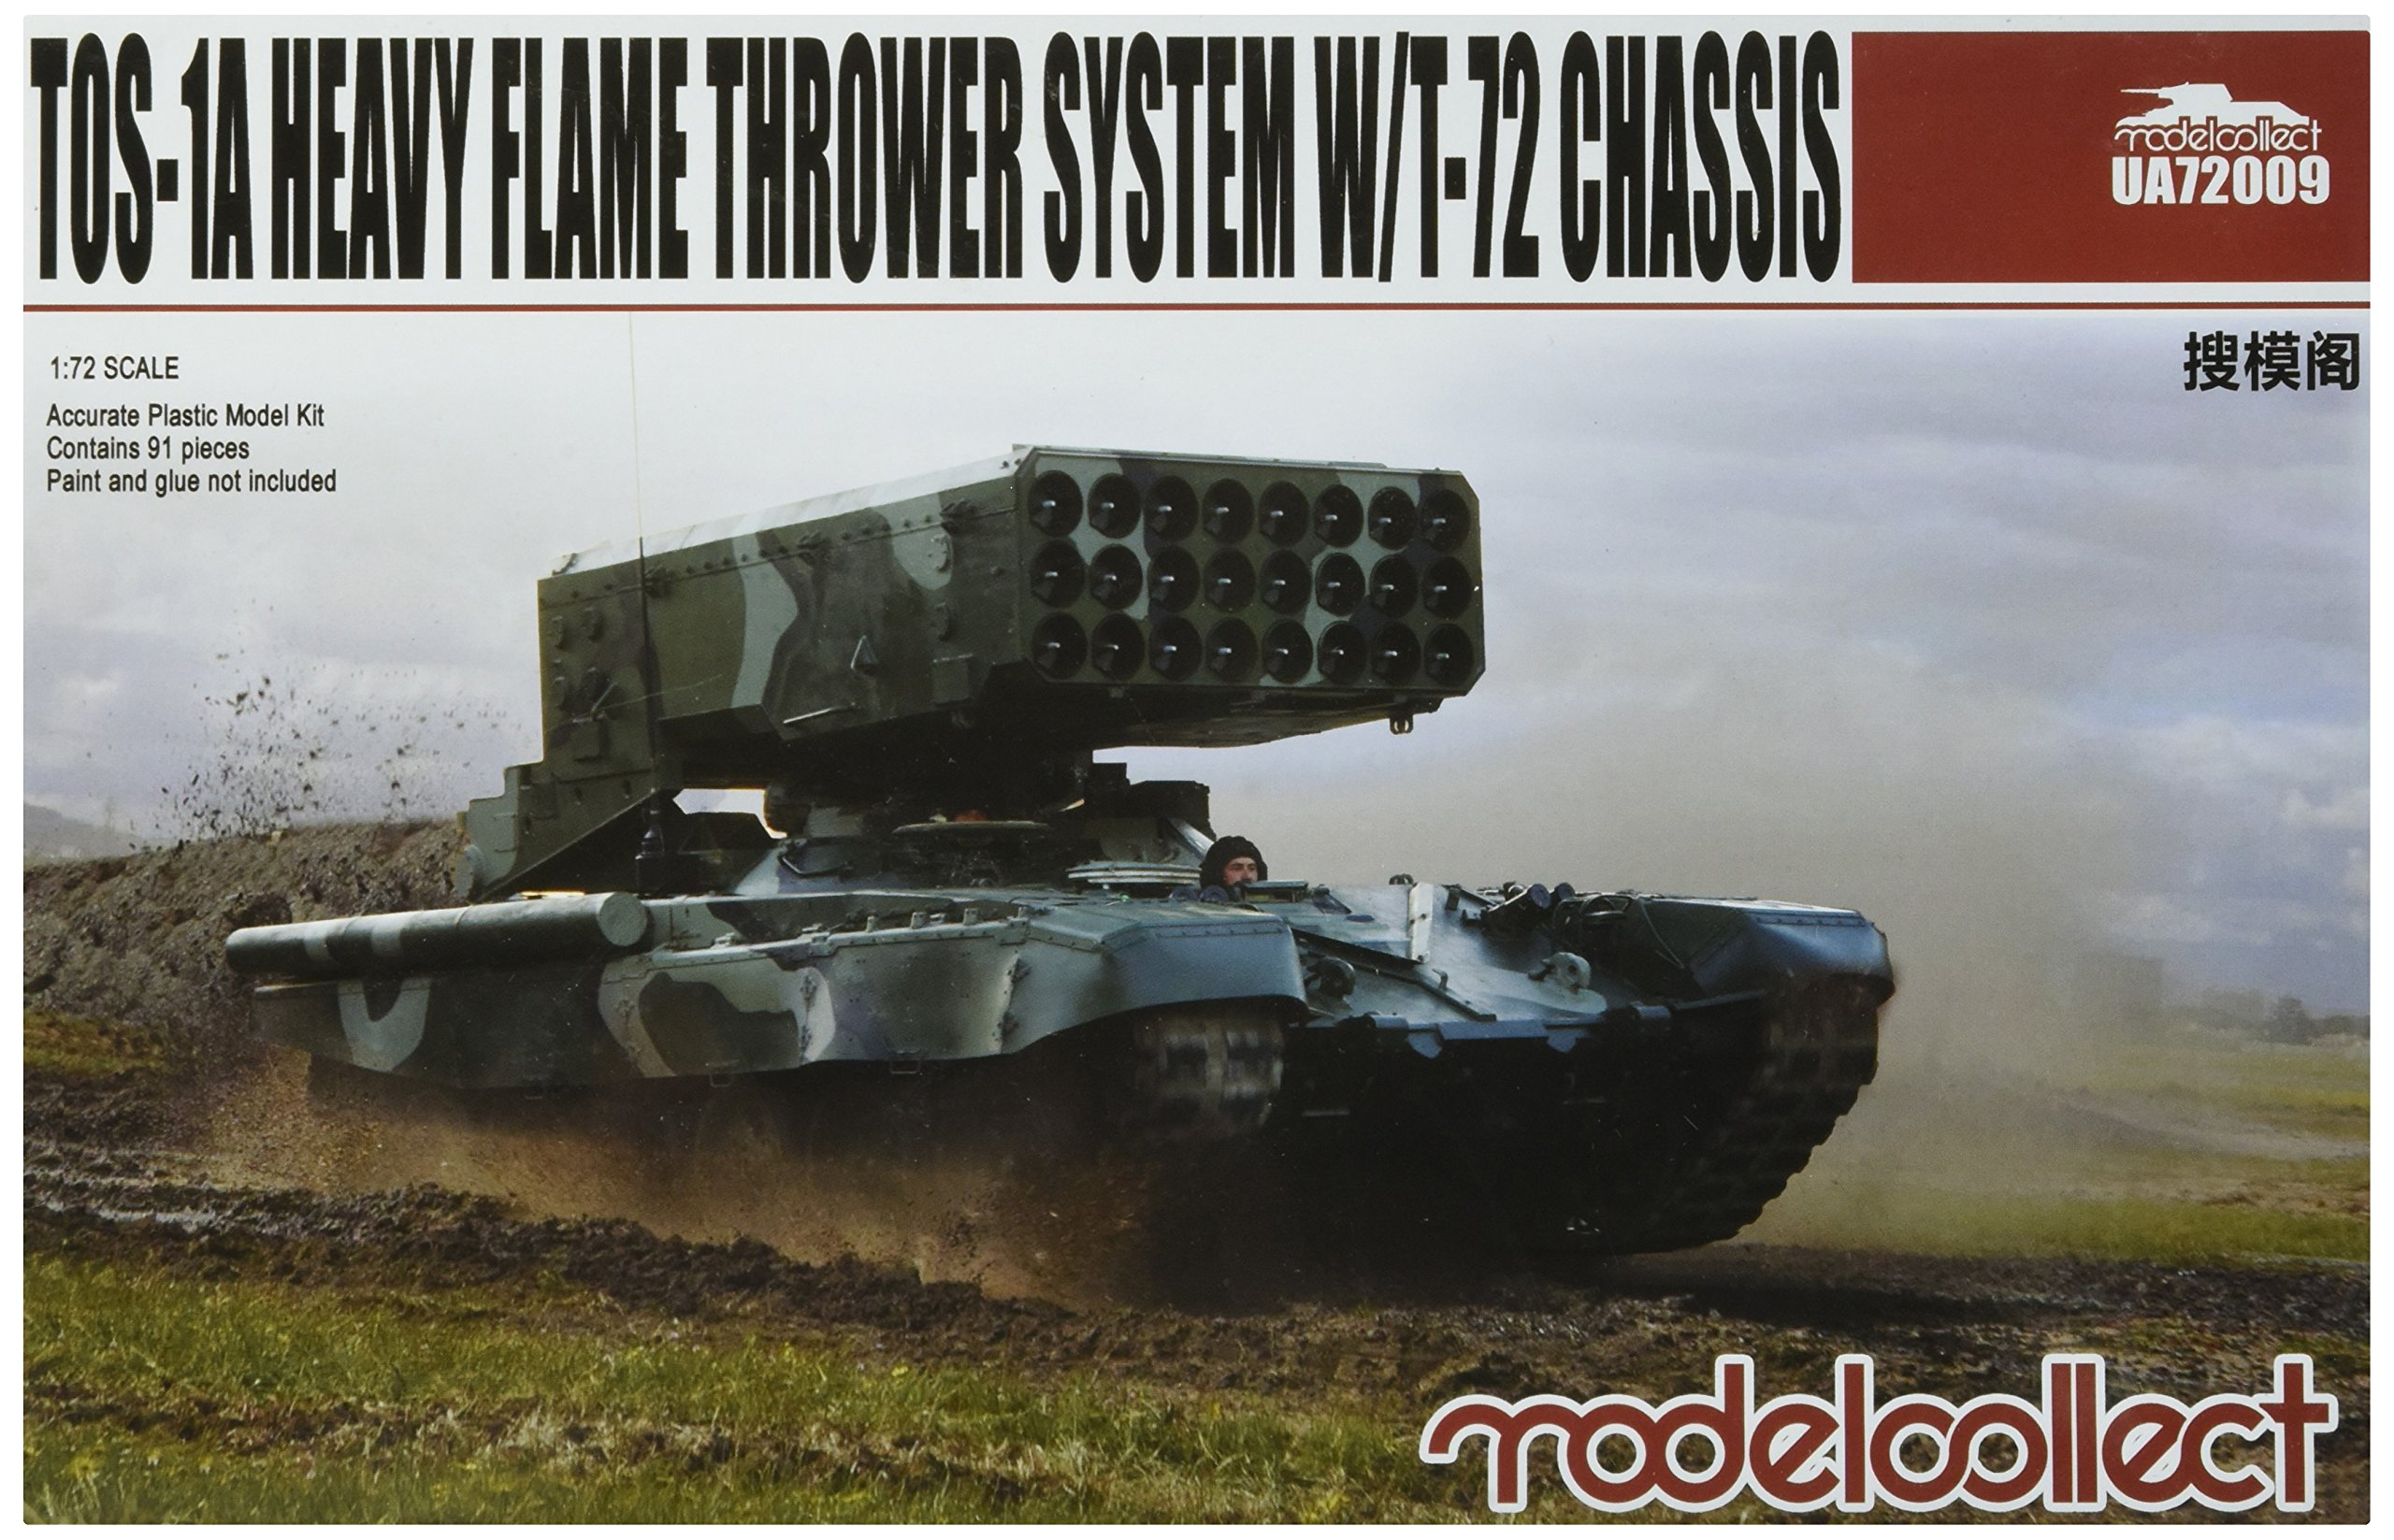 Modelcollect UA72009Model Kit TOS/Heavy Flame Thrower System w/T 72Chassis